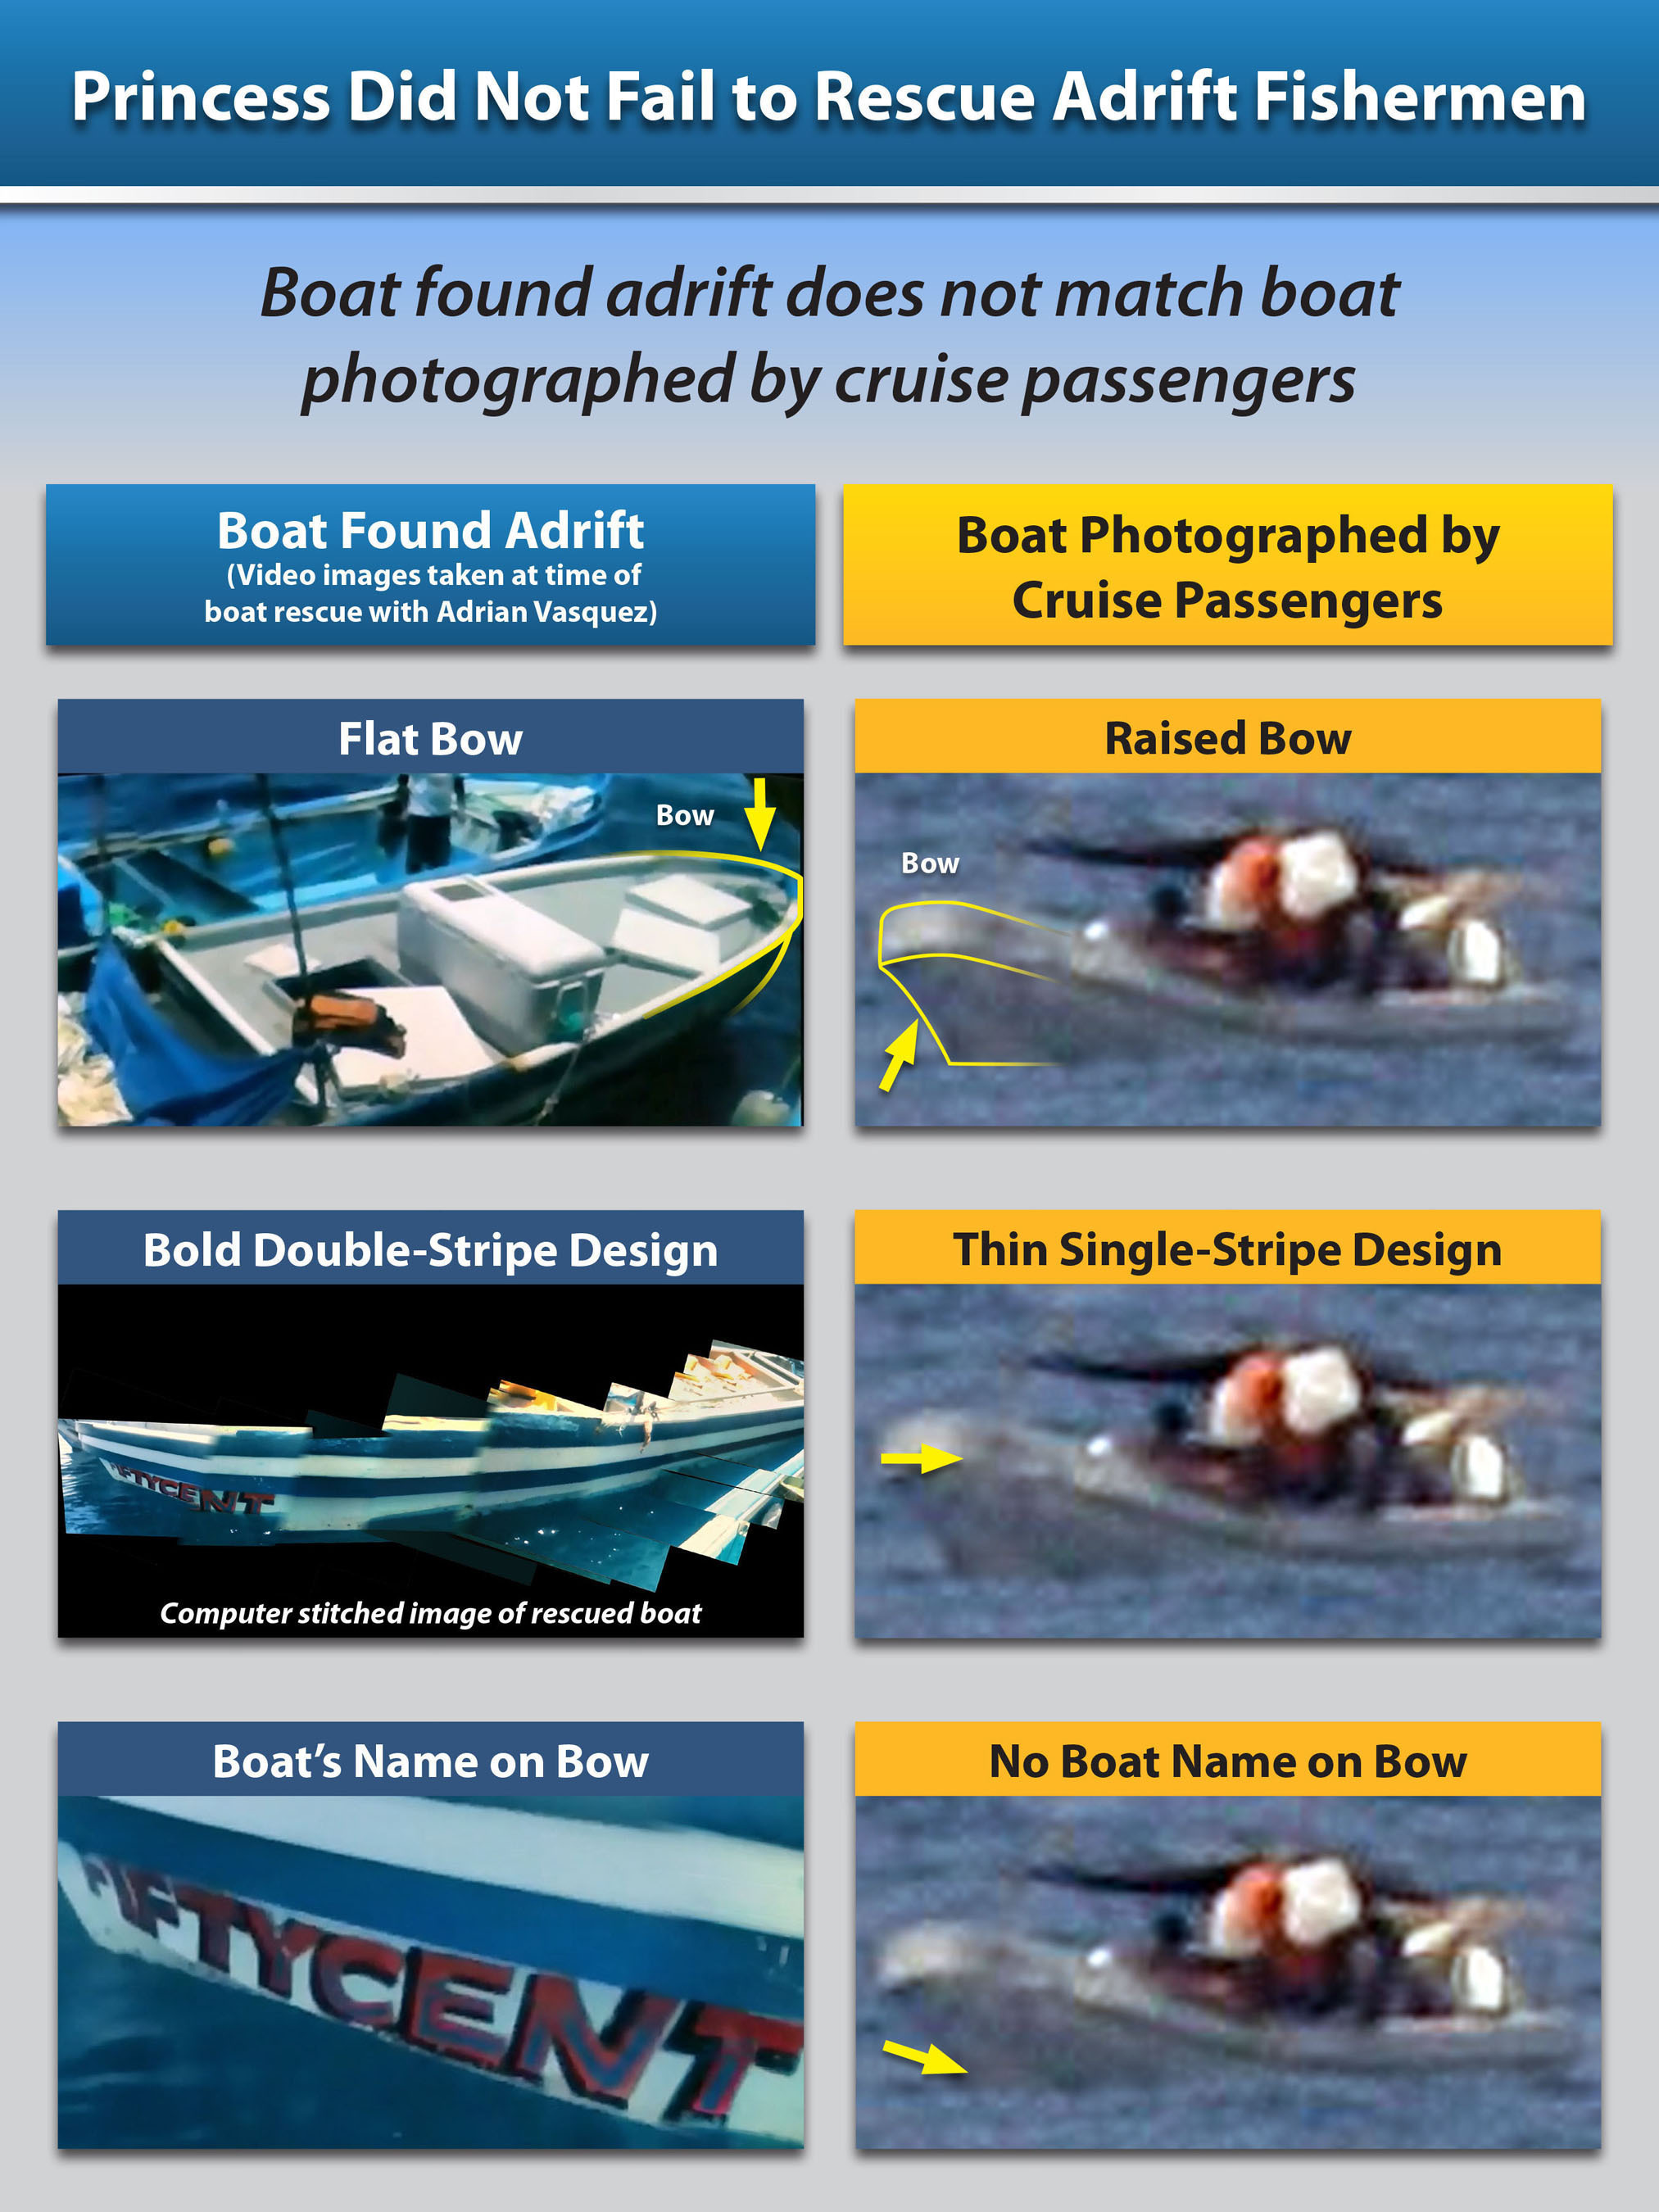 New Evidence Proves Princess Cruises Did Not Fail To Rescue Adrift Fishermen As Alleged